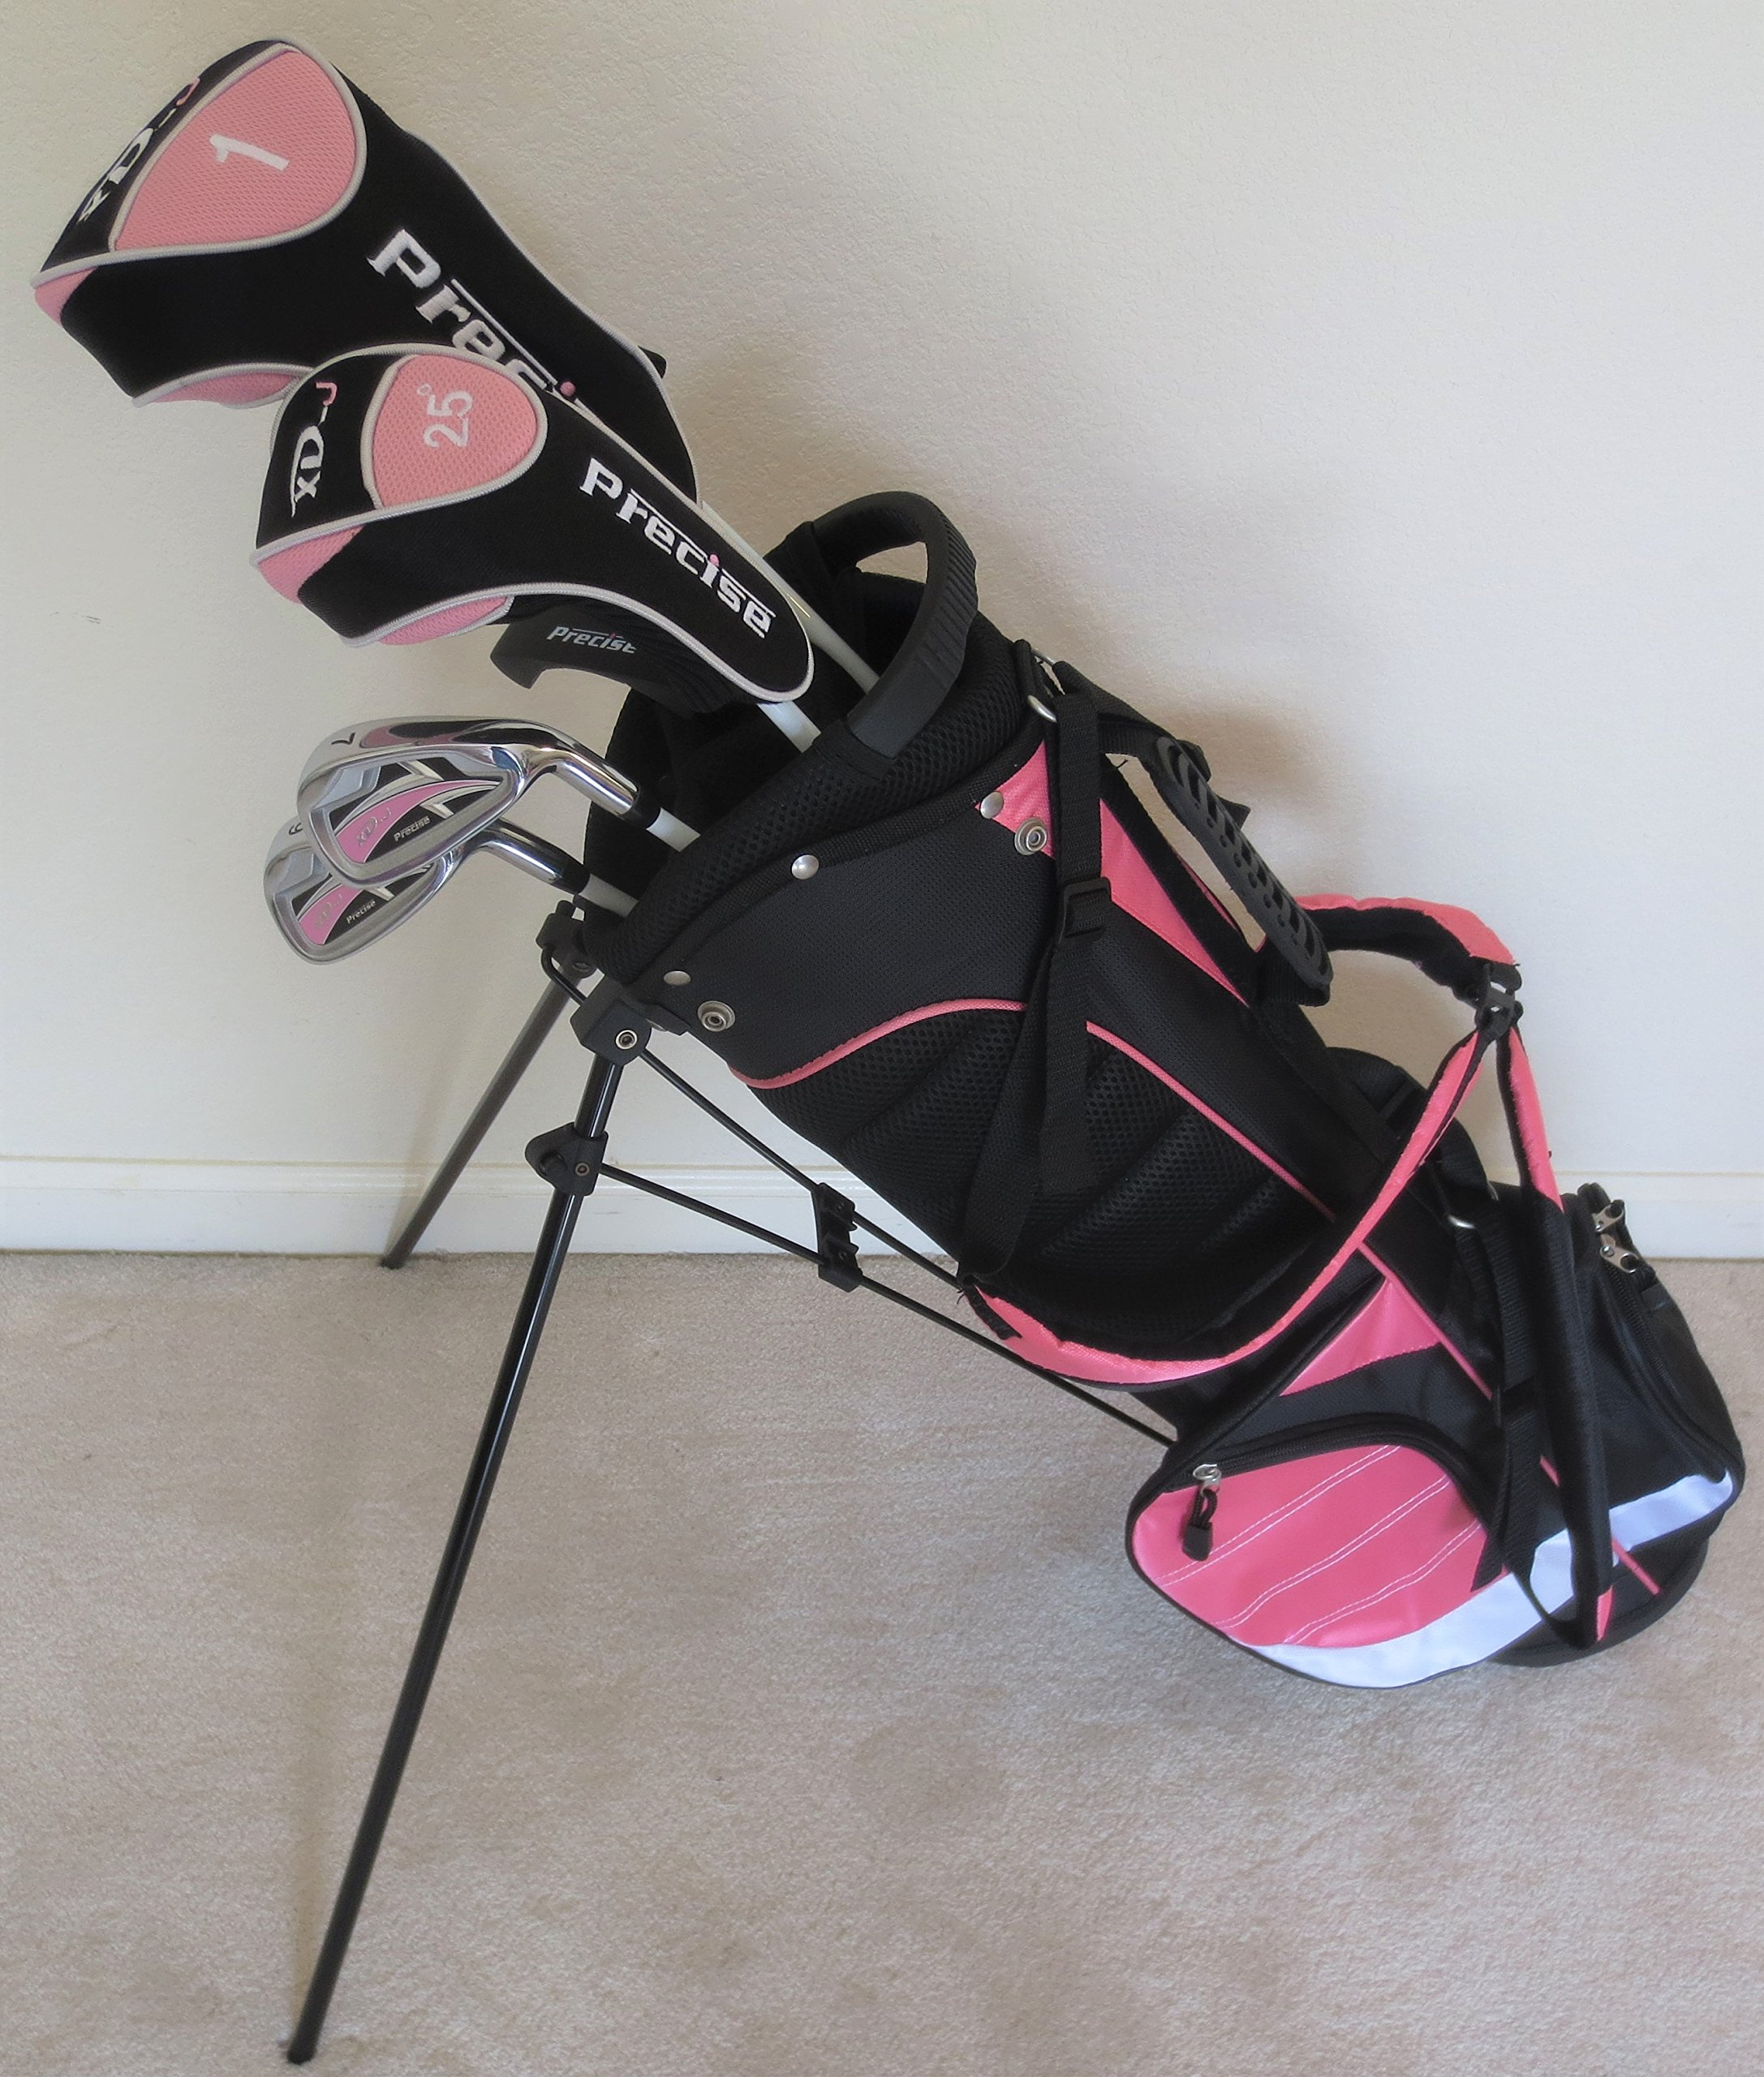 Girls Junior Golf Club Set with Stand Bag for Kids Ages 8-12 Pink Color Right Handed by PG Golf Equipment (Image #1)